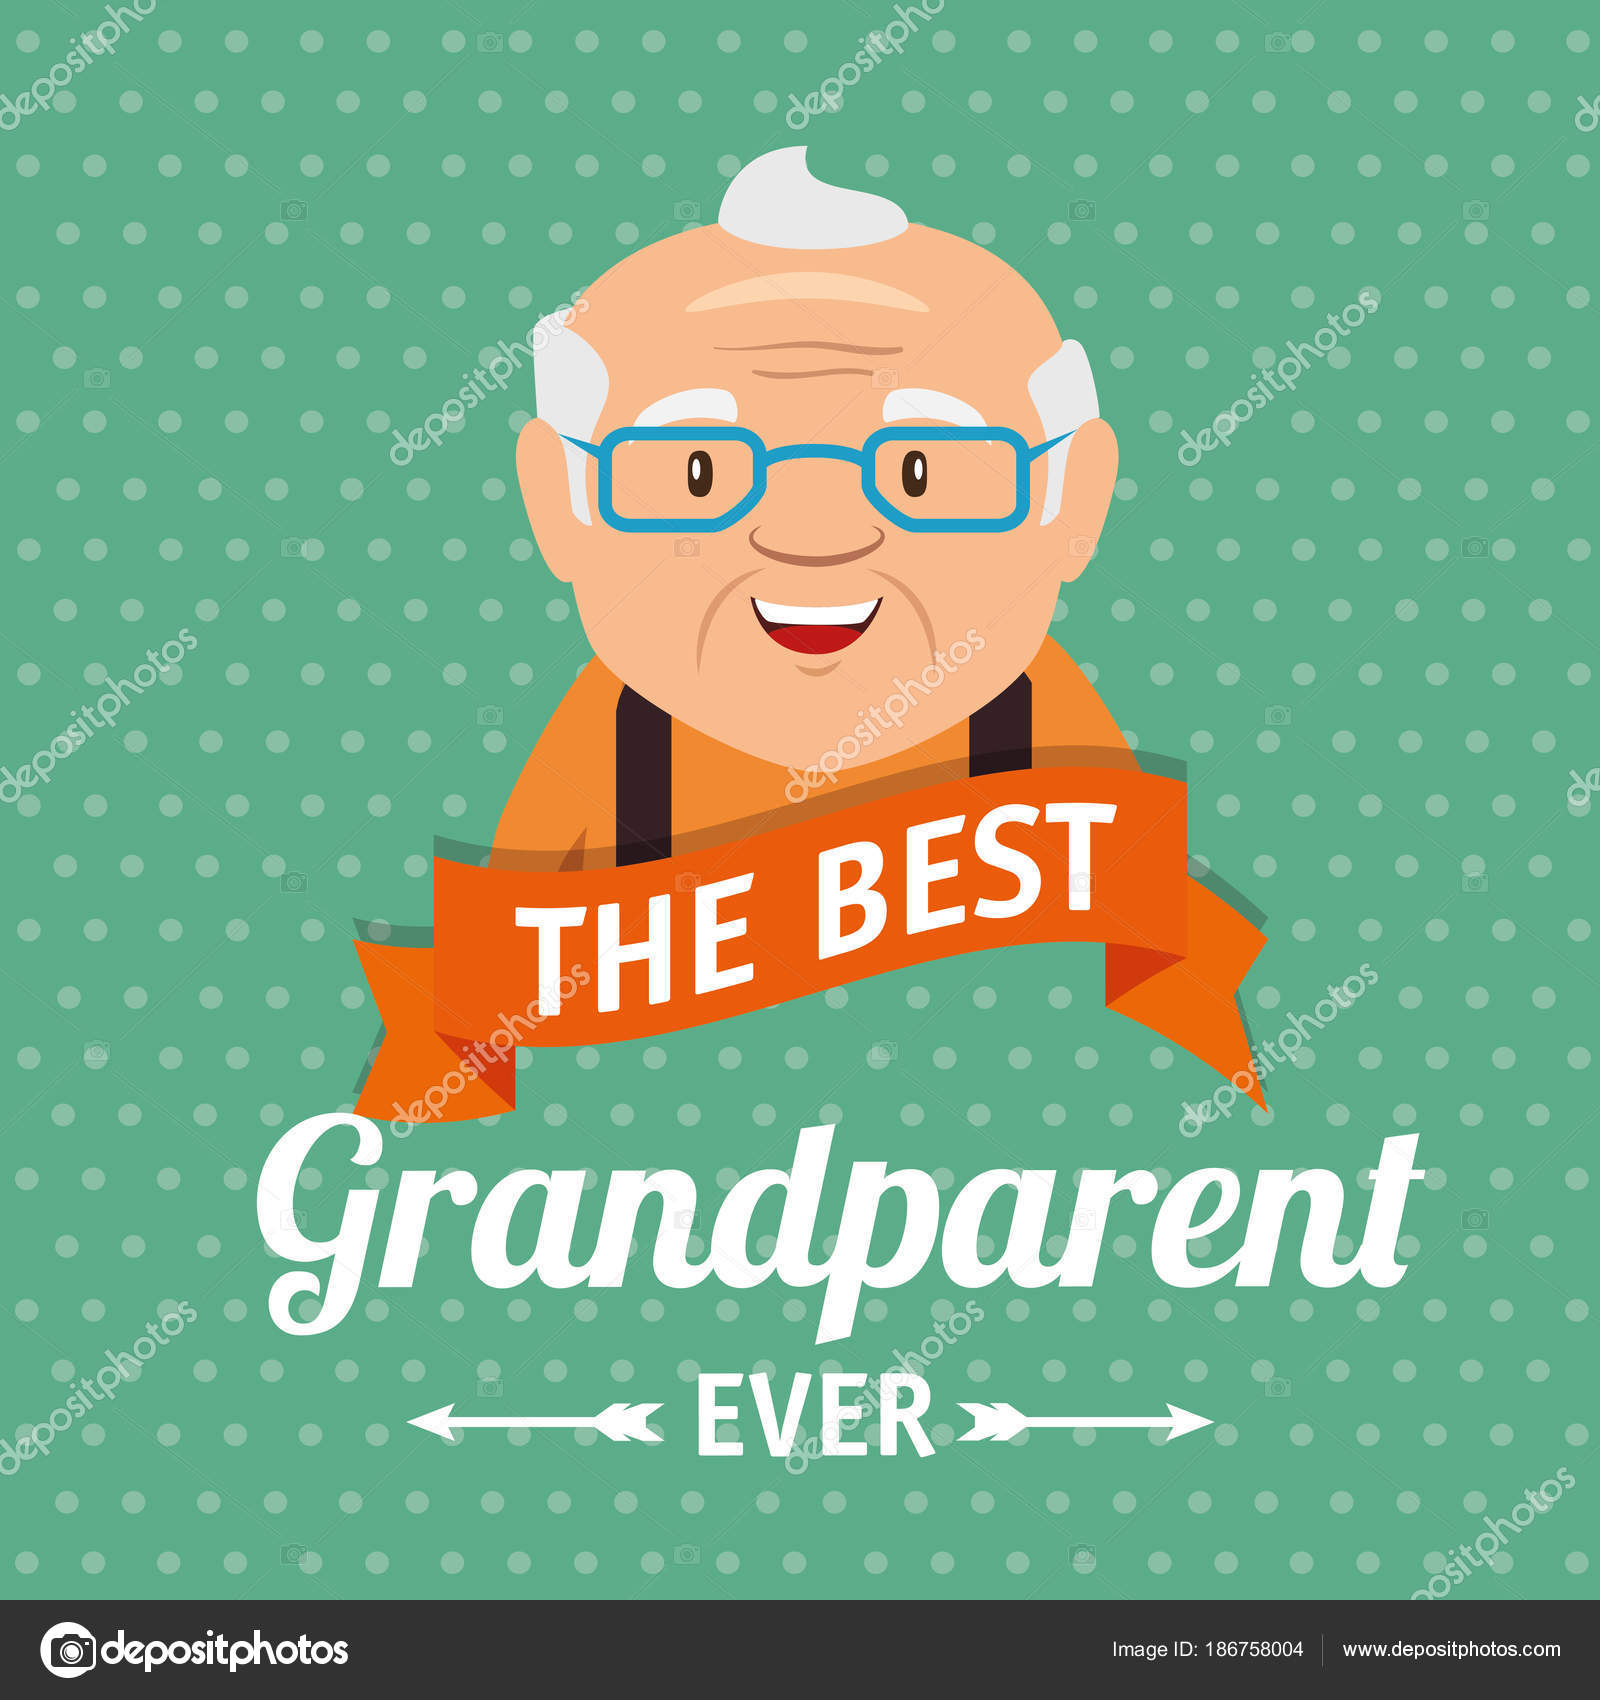 Grandparents day greeting card stock vector yupiramos 186758004 grandparents day greeting card stock vector m4hsunfo